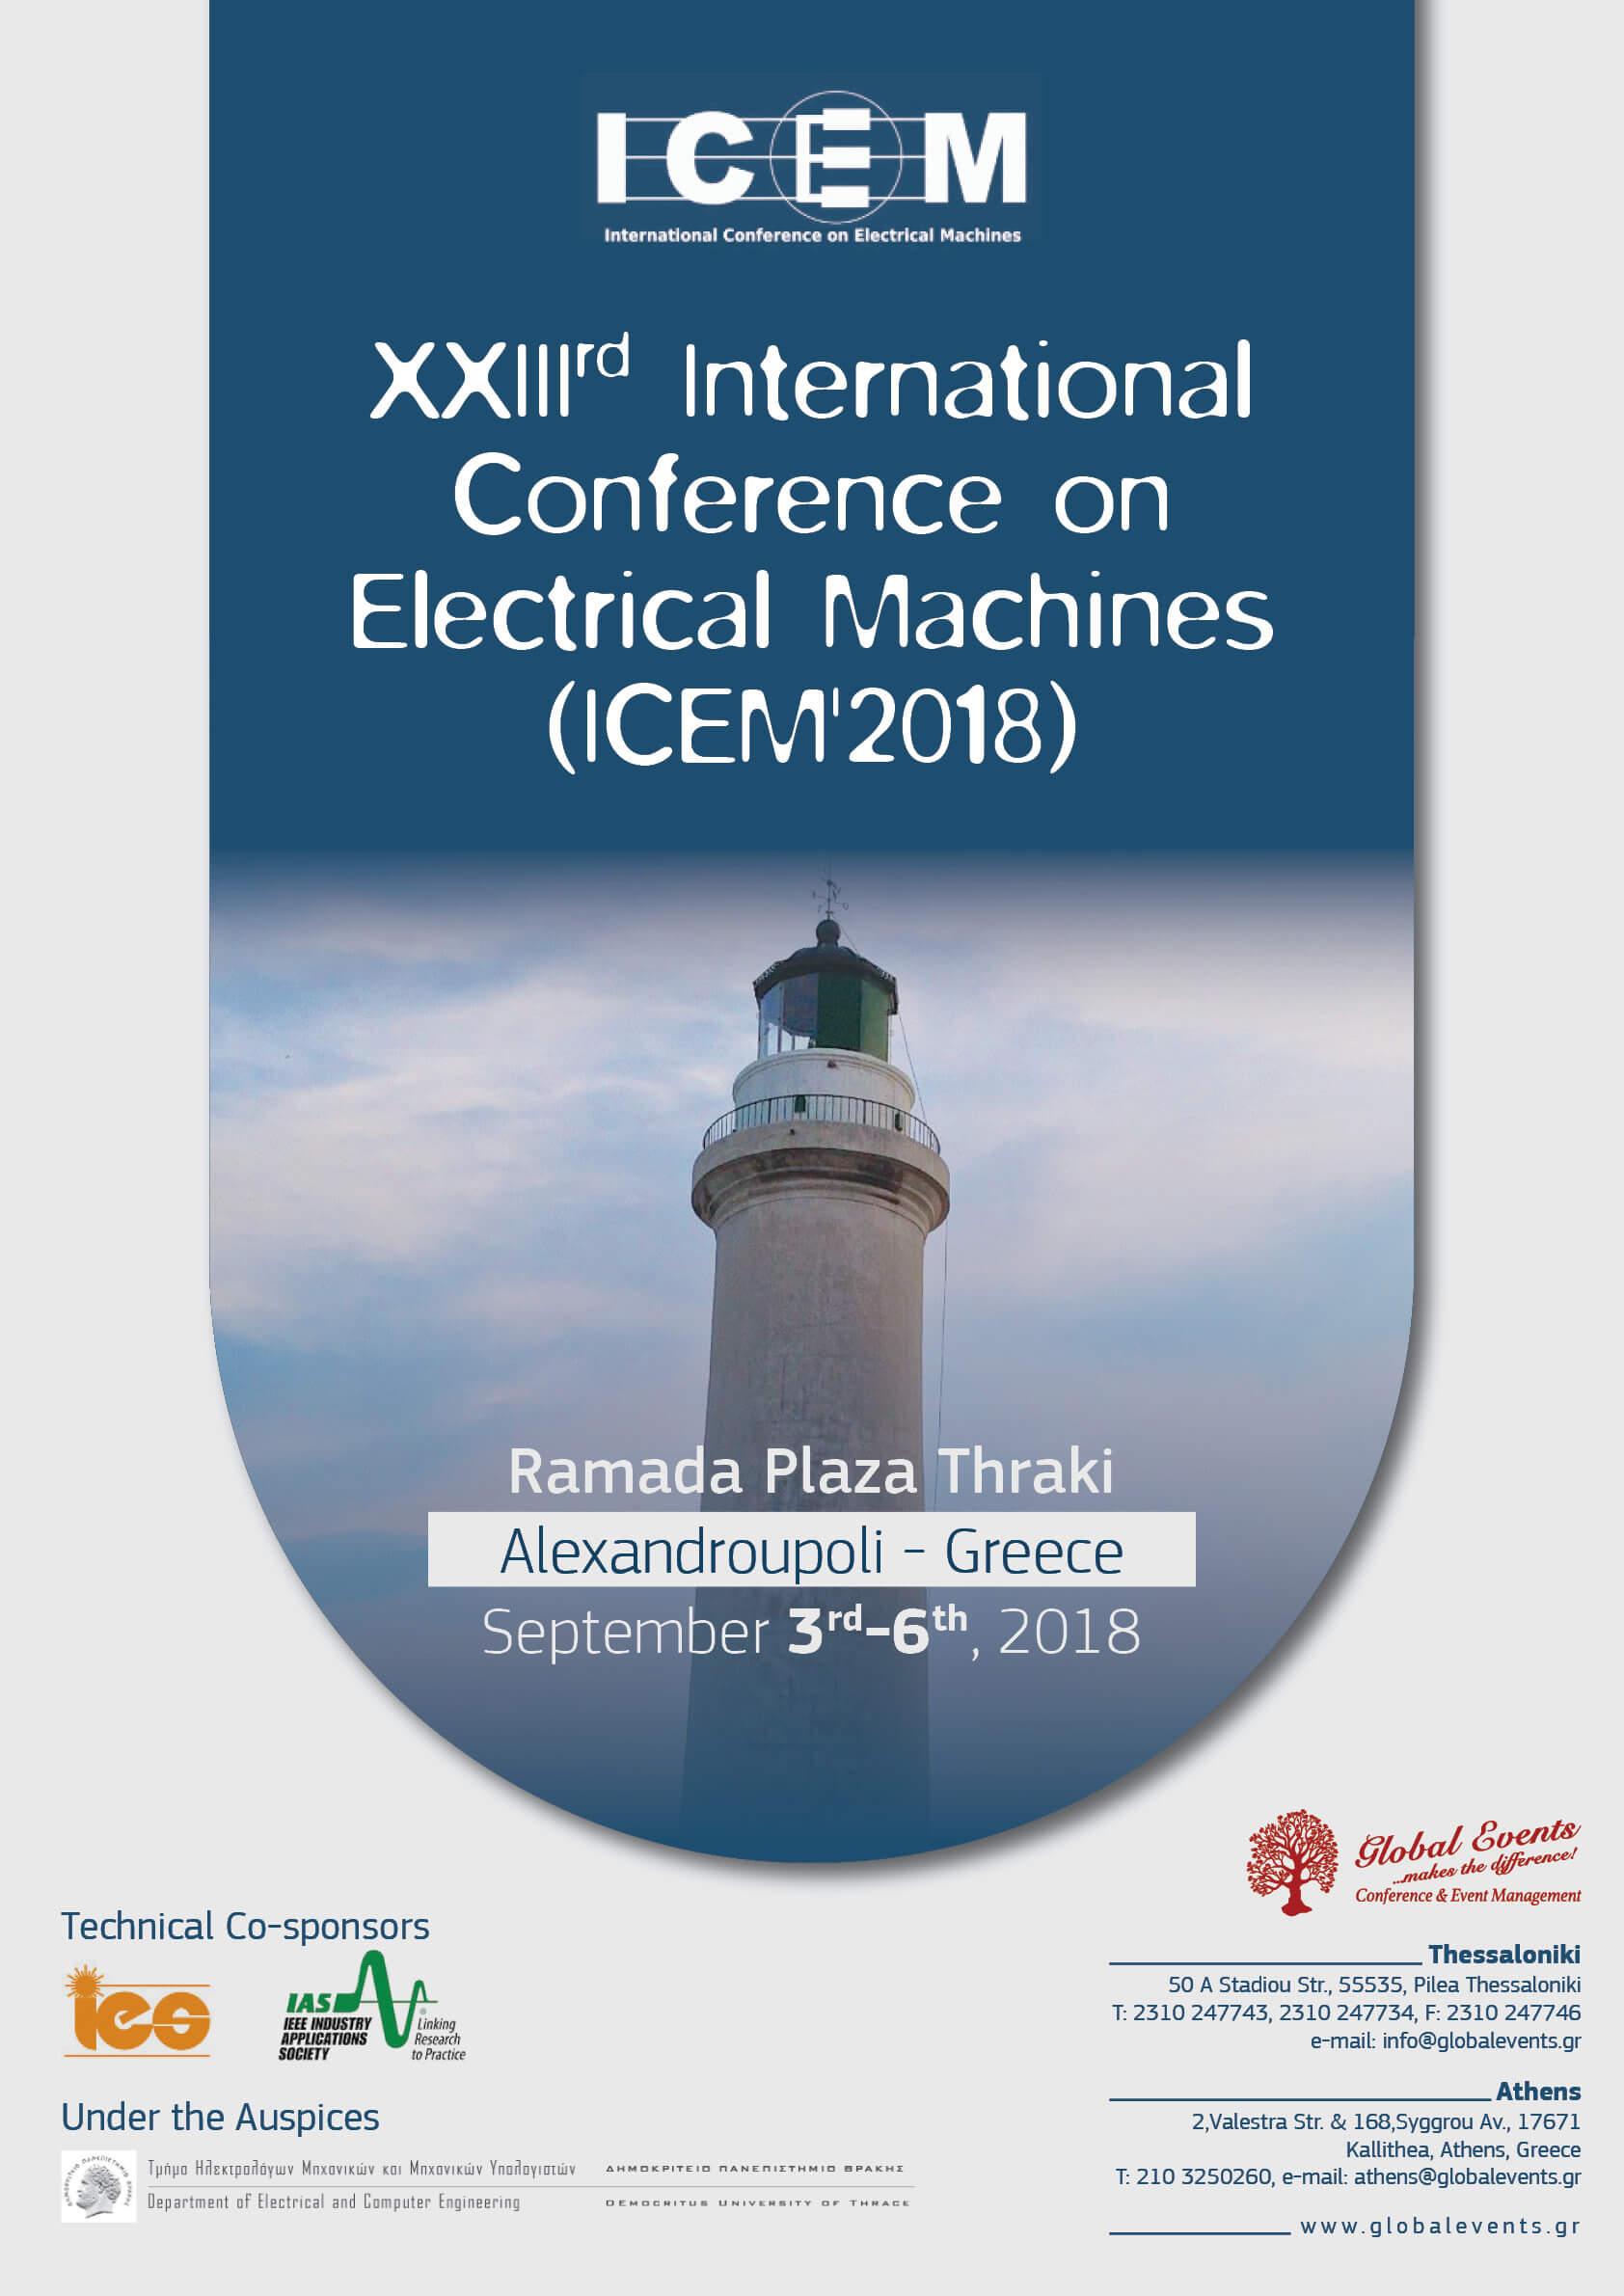 388. XXIIIrd International Conference on Electrical Machines - ICEM2018